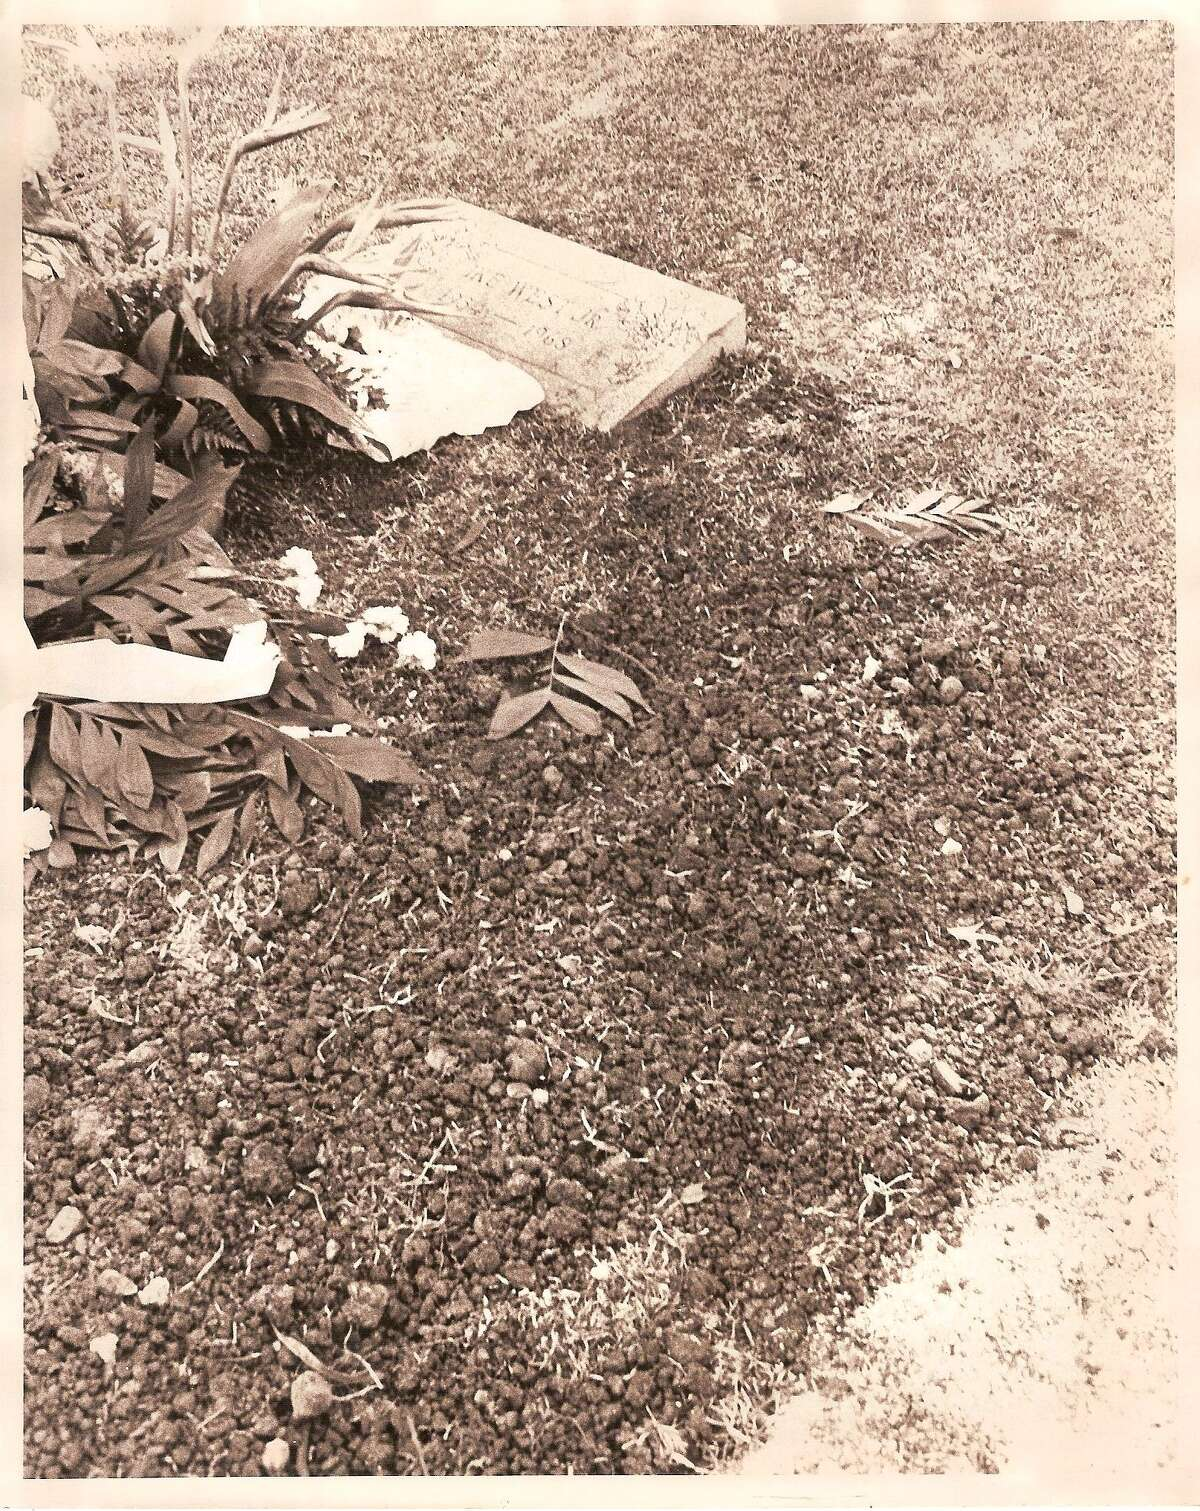 The grave site of Sandra West at the Alamo Masonic Lodge Cemetary, who requested to be buried with a Ferrari. West, who died in 1977, was the wife of oil millionaire Ike West, who died in 1968.